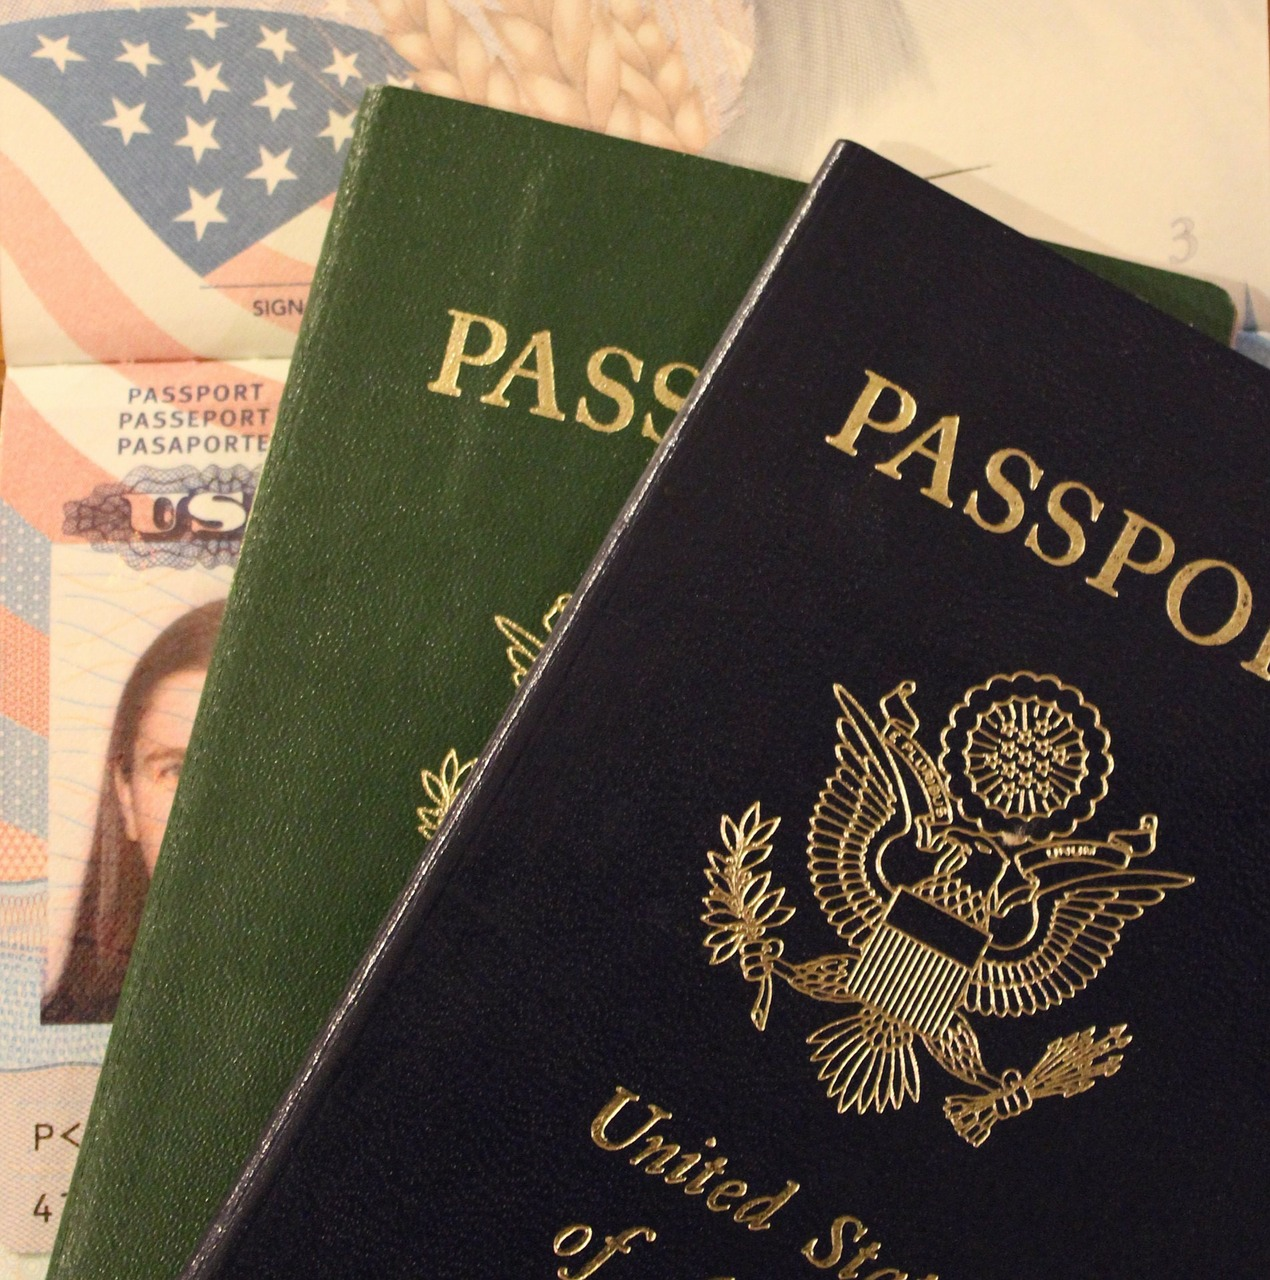 Do I need a passport for a Disney Cruise?